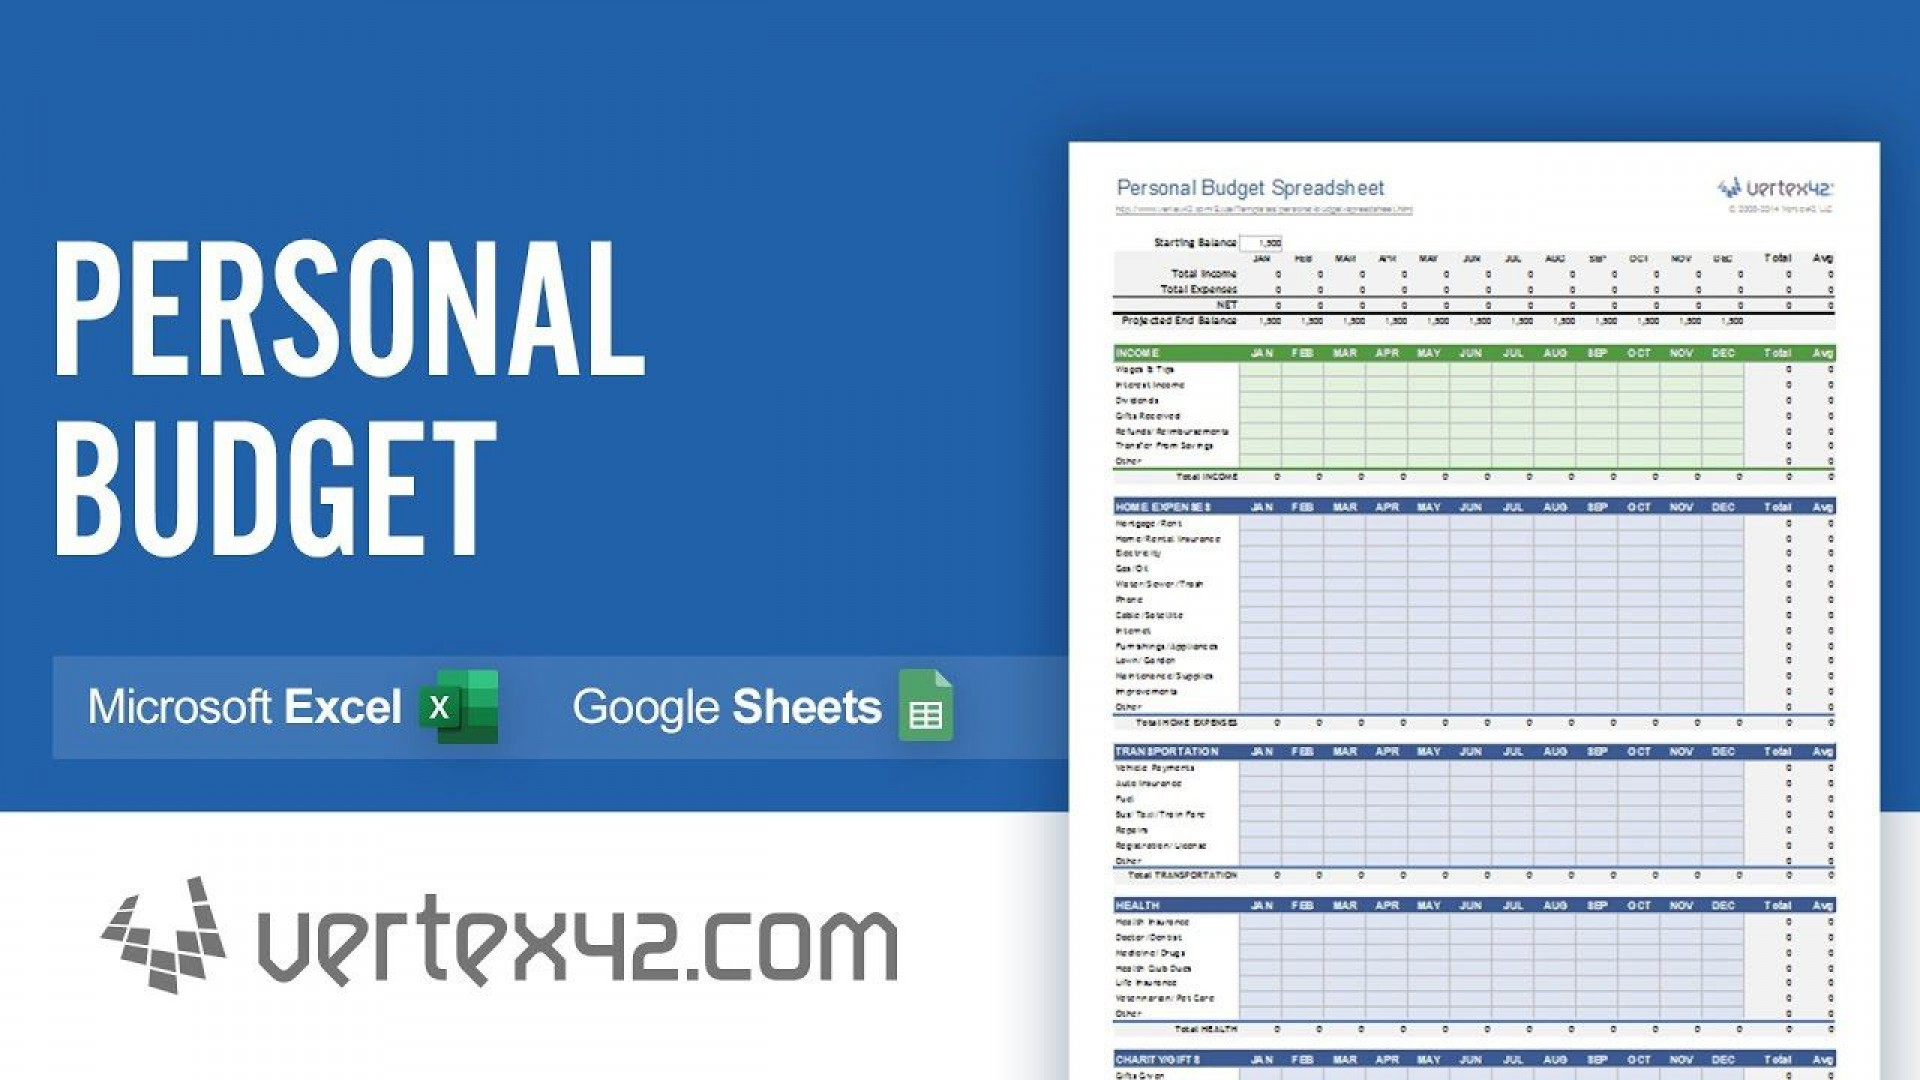 004 Incredible Personal Spending Excel Template High Resolution  Best Budget Planner Free Finance1920